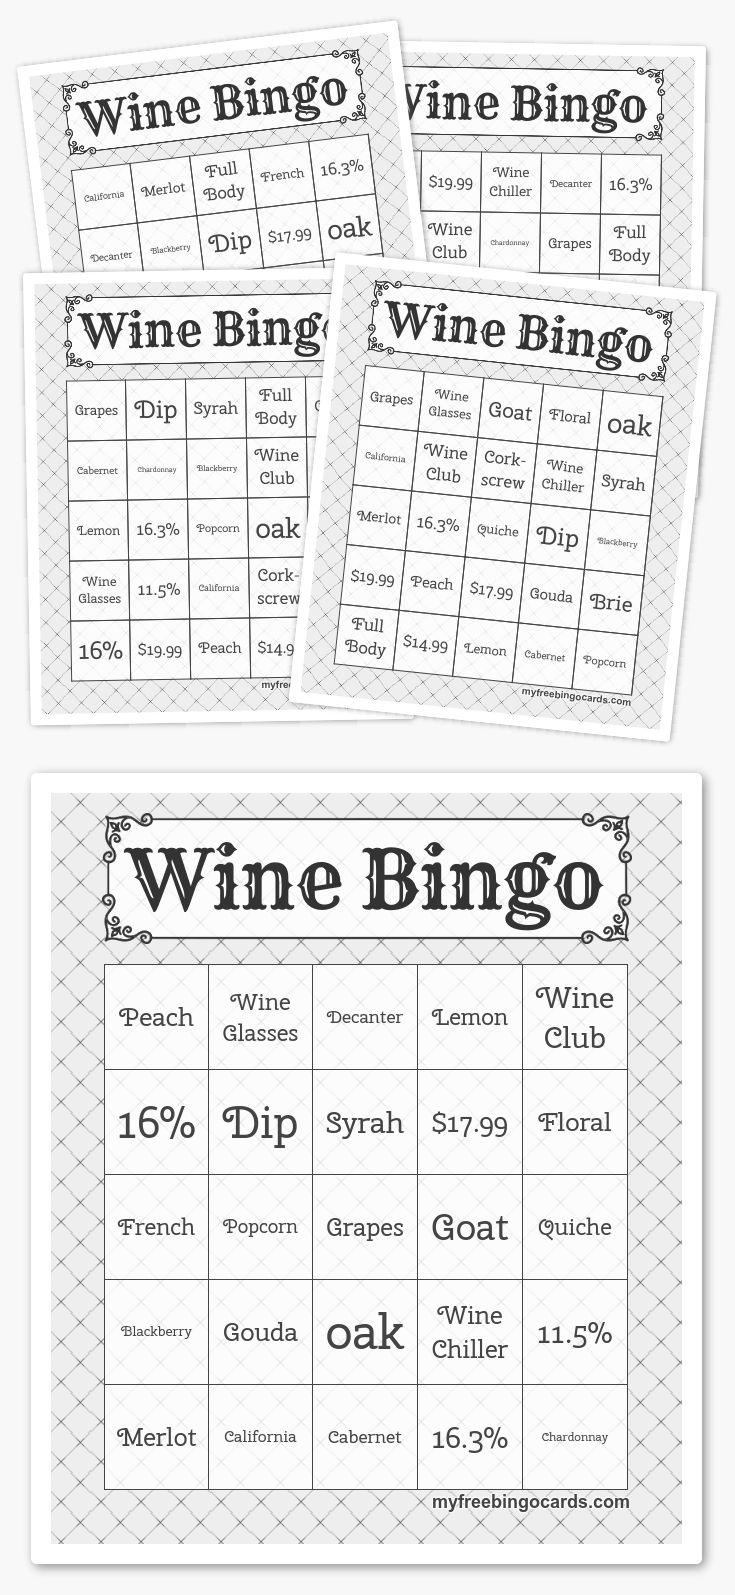 Make your own free bingo cards at myfreebingocards.com